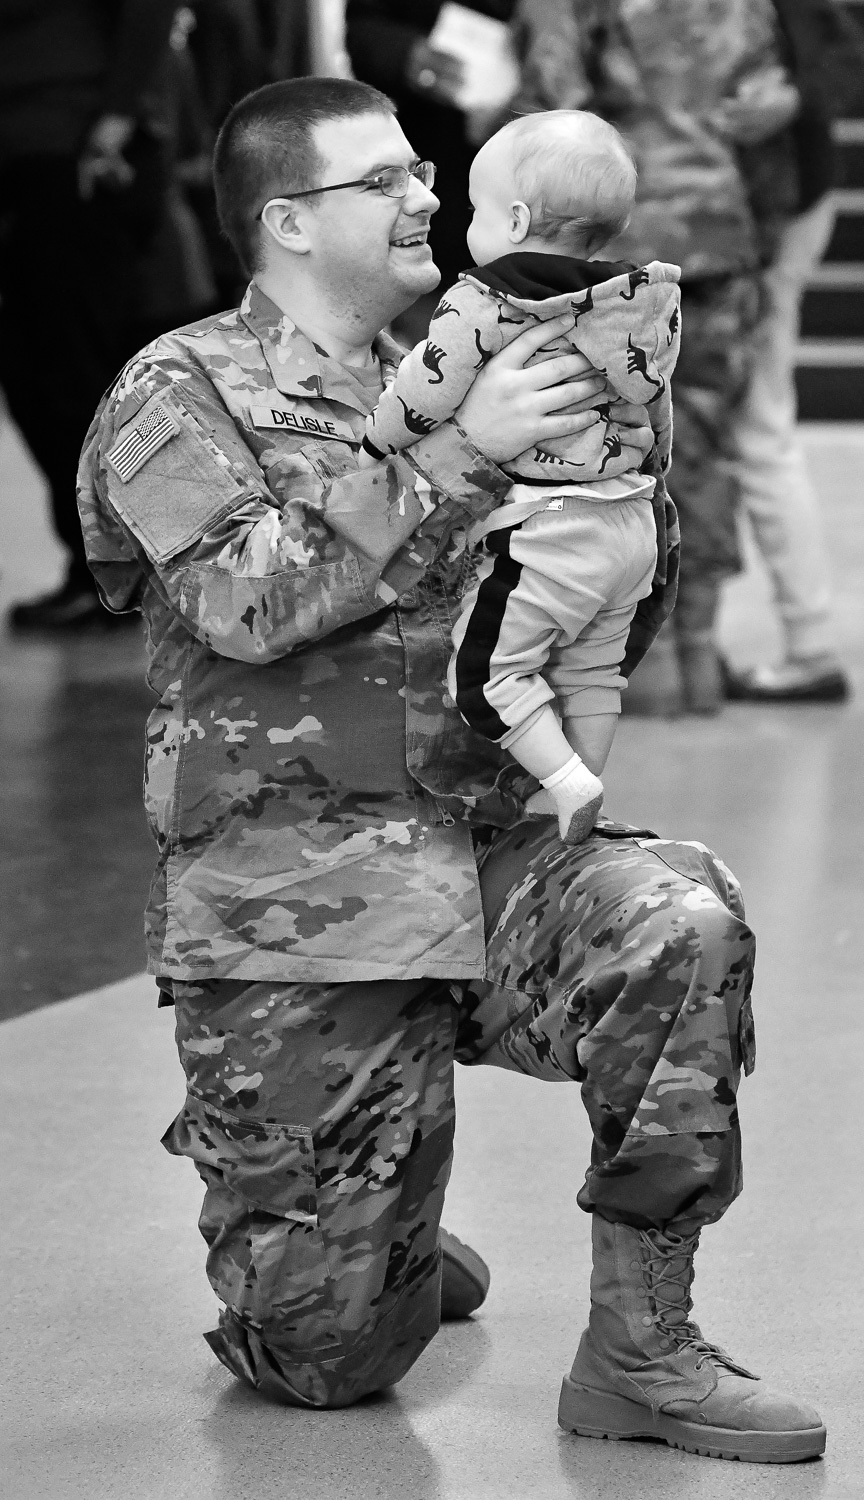 Nikon D500, 1/320 @ f/4, ISO 7200, 70-200mm  Specialist Ben Delisle, of South Bridge, holds his son Theadore, 11 months, at the conclusion of a deployment ceremony at Reading High School on Sunday, Jan. 21, 2018. Soldiers from the 151st Regional Support Group, Massachusetts Army National Guard will soon be deployed to southwest Asia for nine months. [Wicked Local Staff Photo / David Sokol]